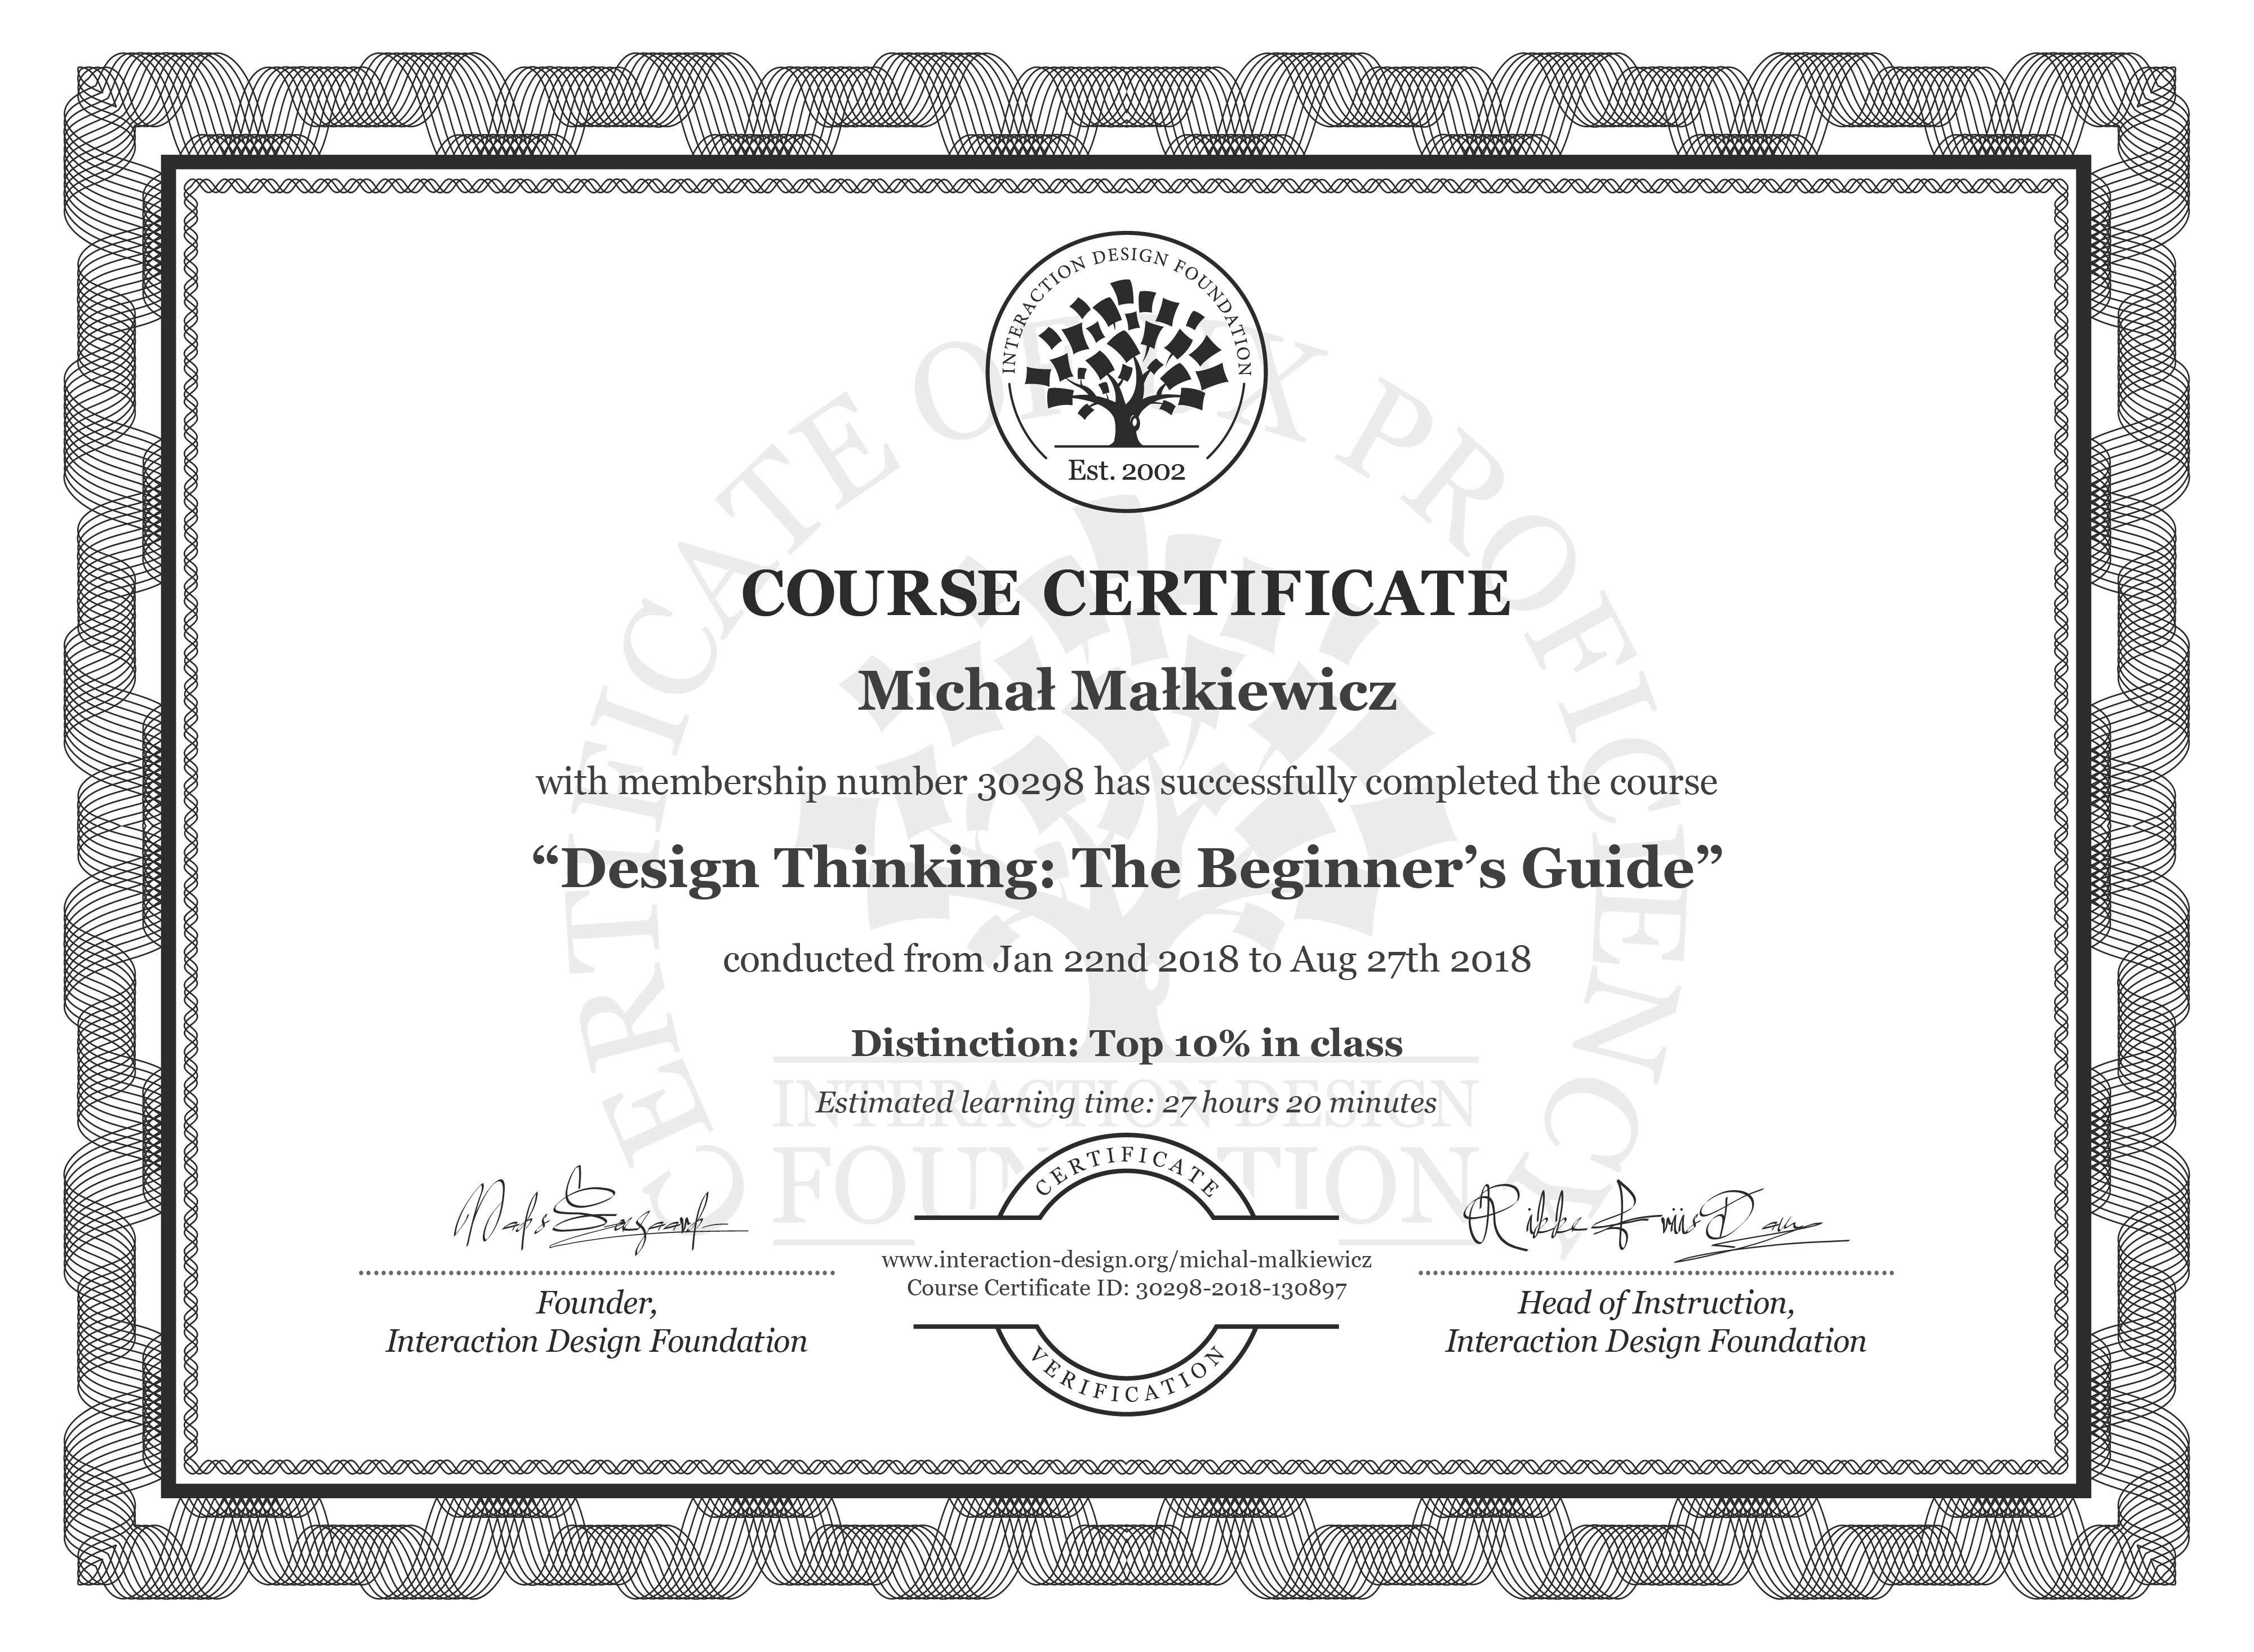 Michał Małkiewicz: Course Certificate - Design Thinking: The Beginner's Guide